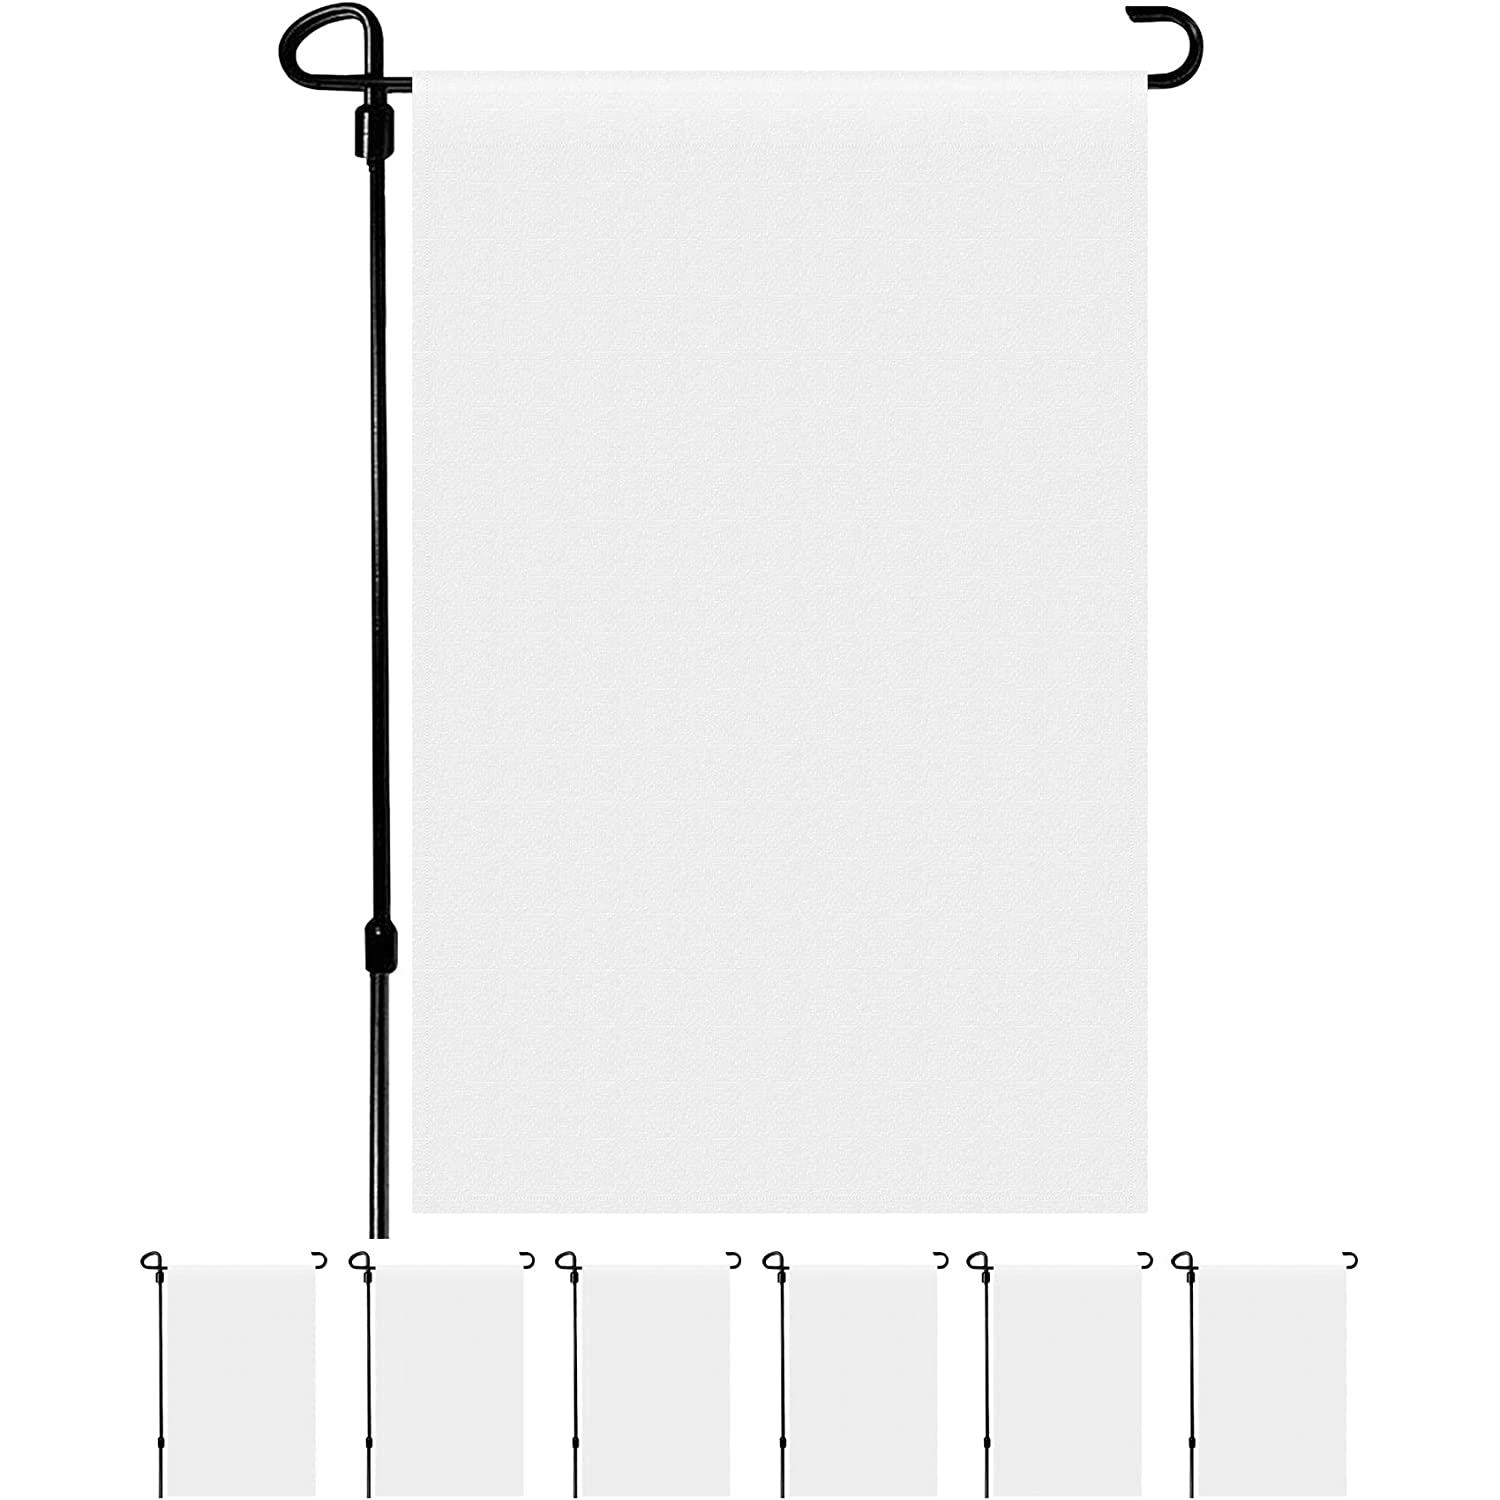 HawHawToys Blank Garden Flags, Solid White Garden Flag for Indoor Outdoor Decoration and Yard Garden Parade Banners DIY Use (11.8 x 17.7 Inches) (12)